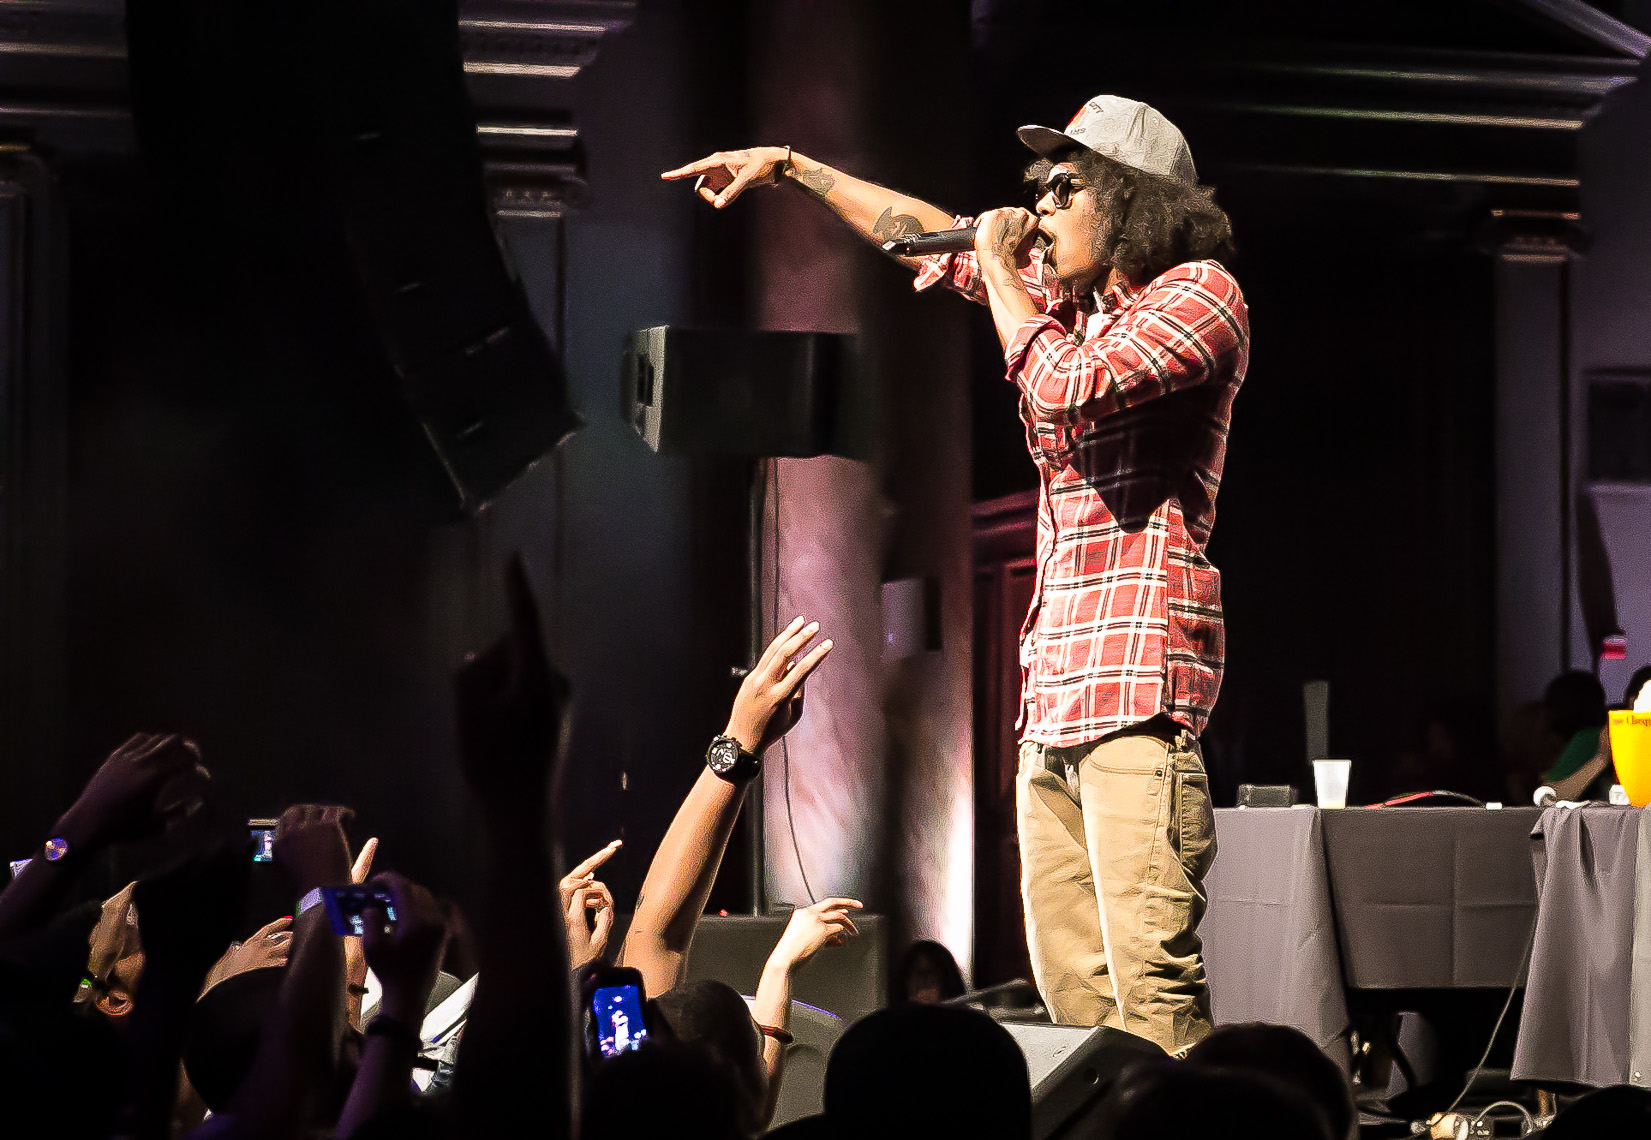 Ab-Soul with Black Hippy by music photographer Deborah Lowery